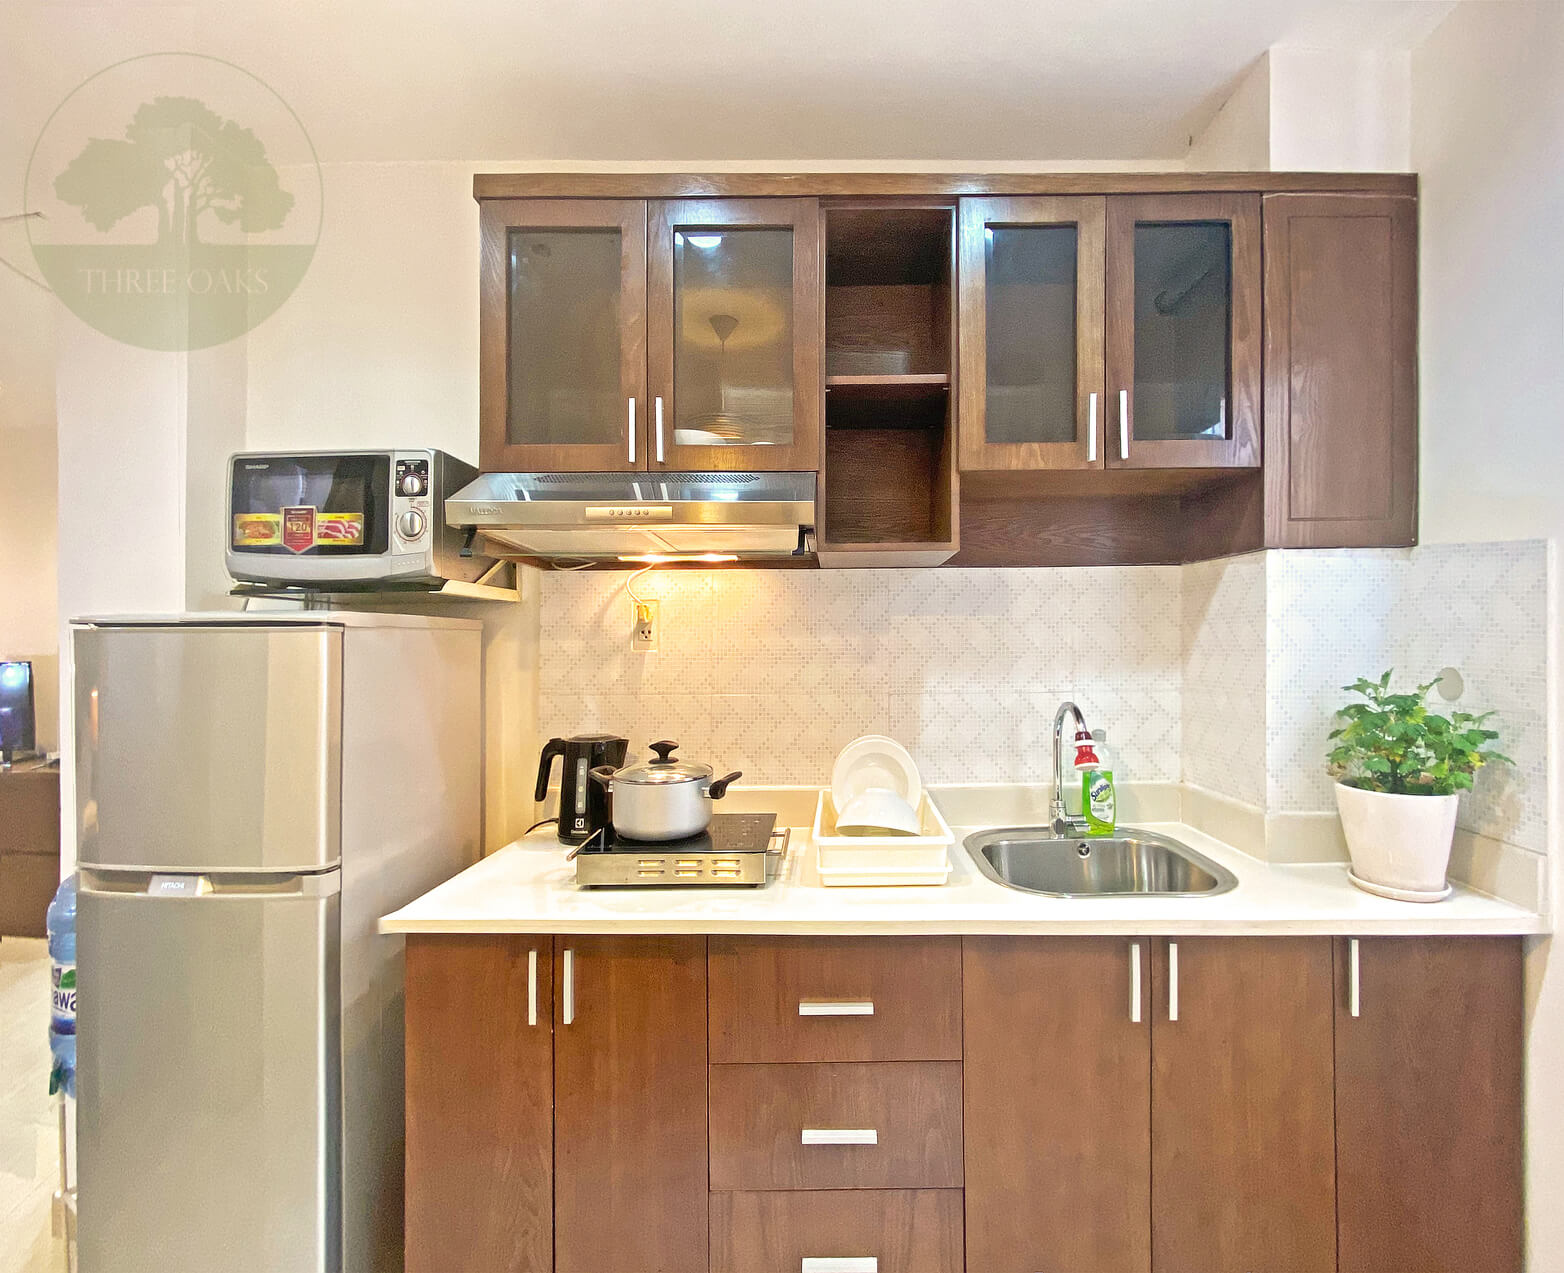 studios-and-apartments-for-rent-in-Ho-Chi-Minh-9